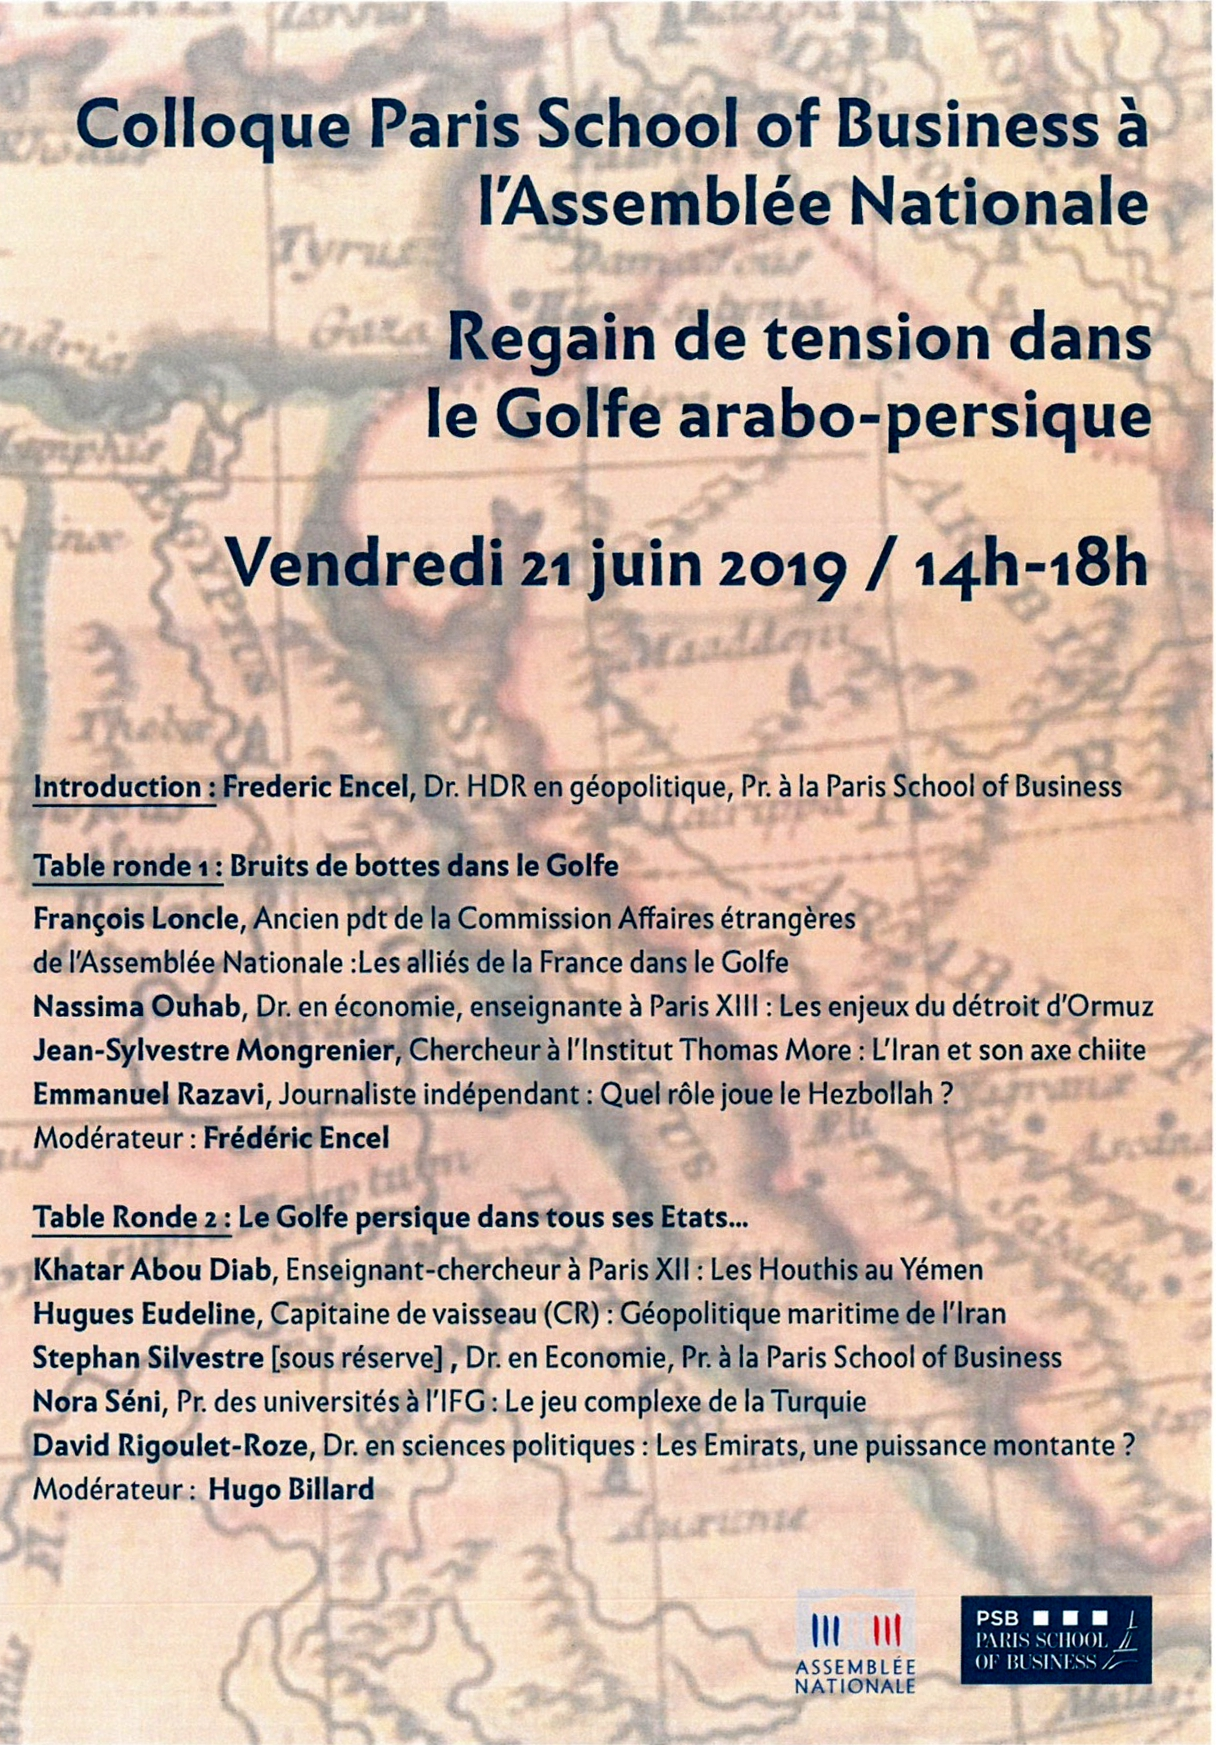 2019-06-21_Colloque_Regain de tension.jpg